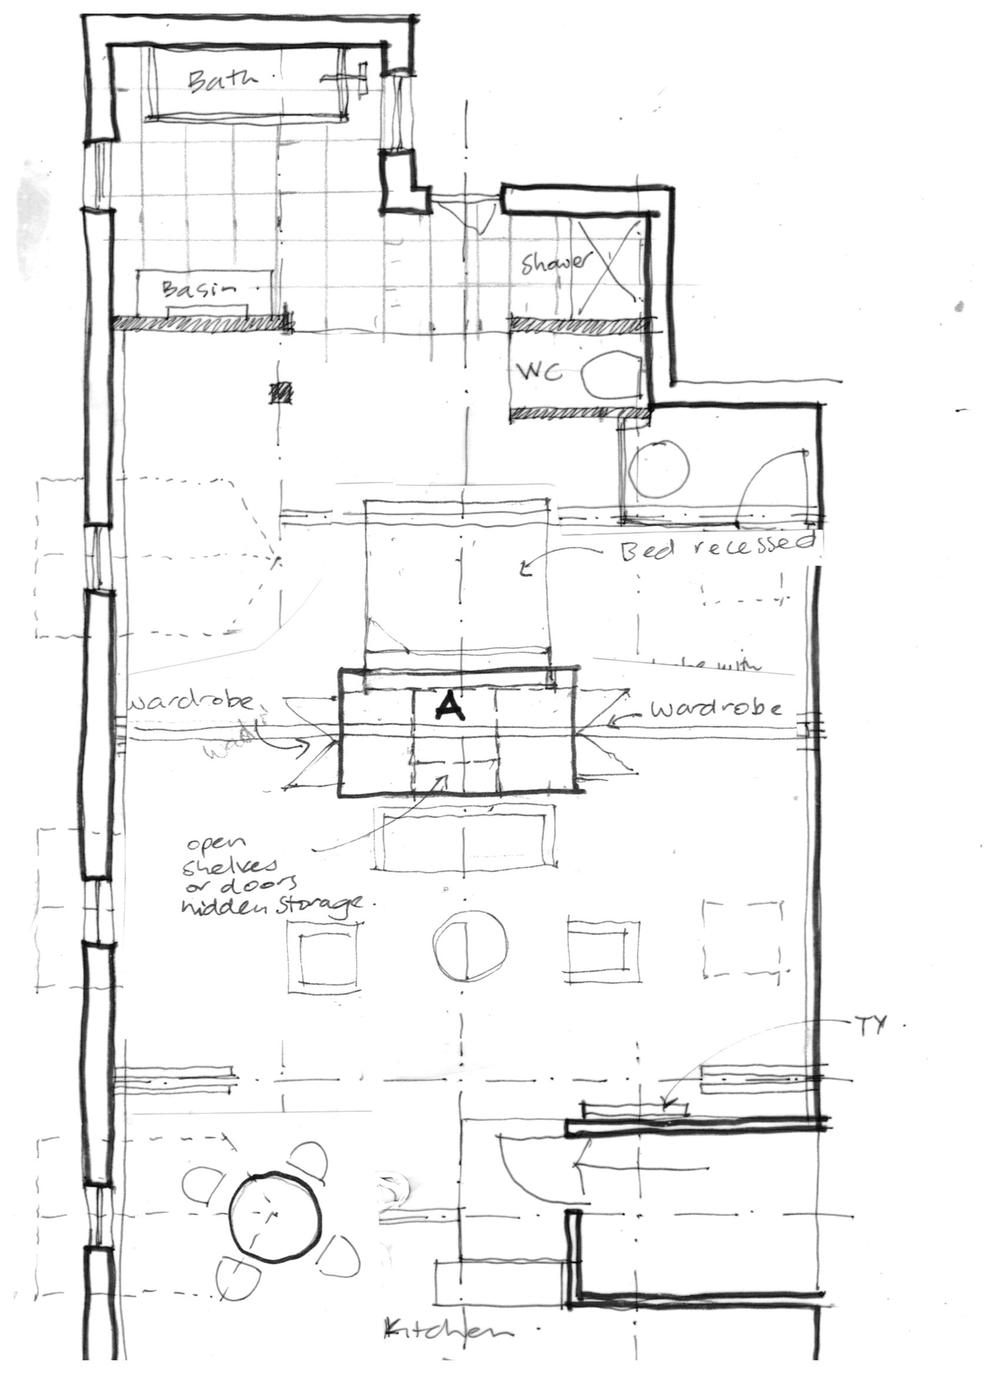 Layout sketch plan -Attic